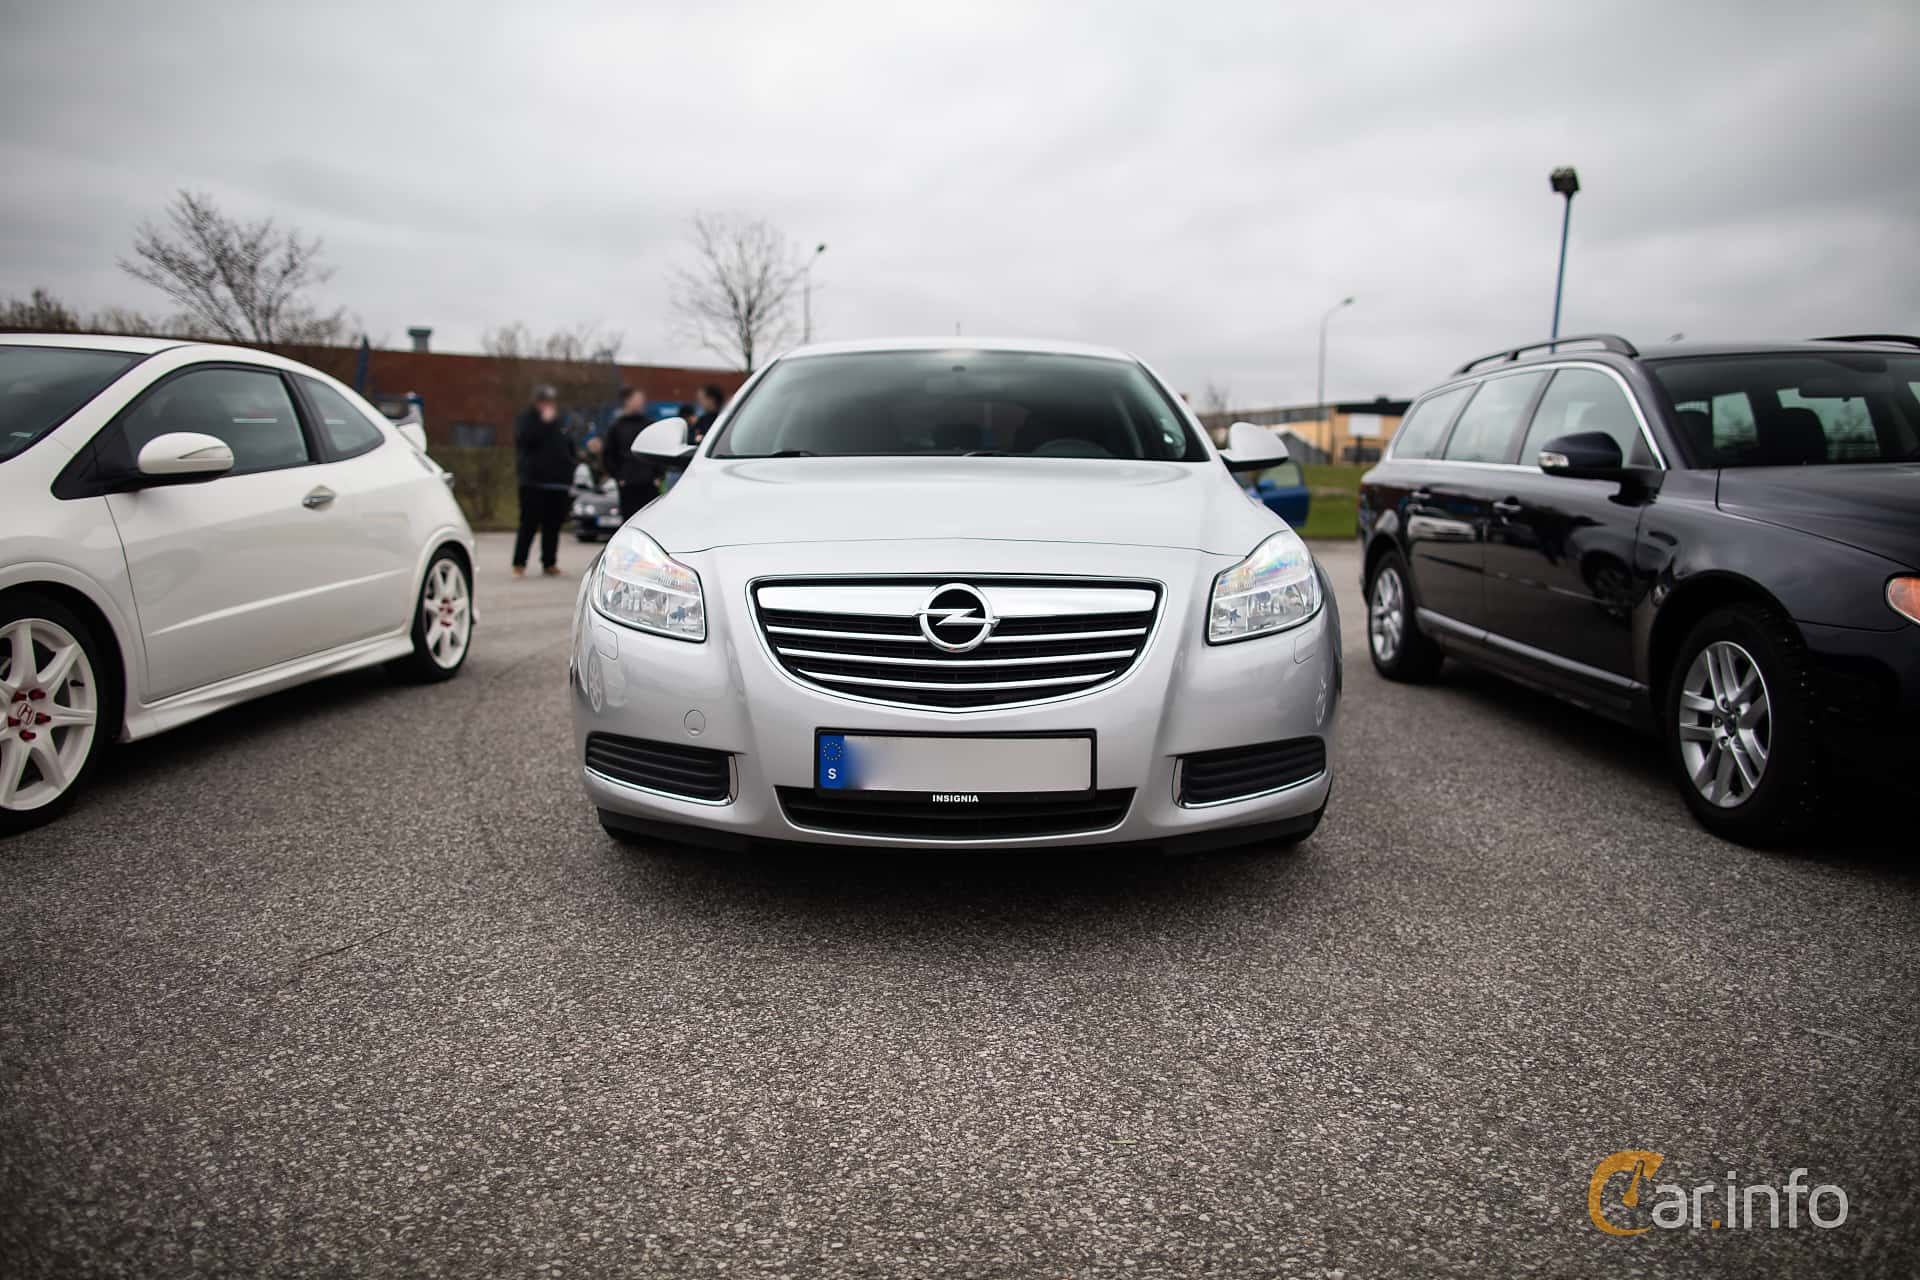 3 images of Opel Insignia 2.0 Turbo Manual, 220hp, 2009 by